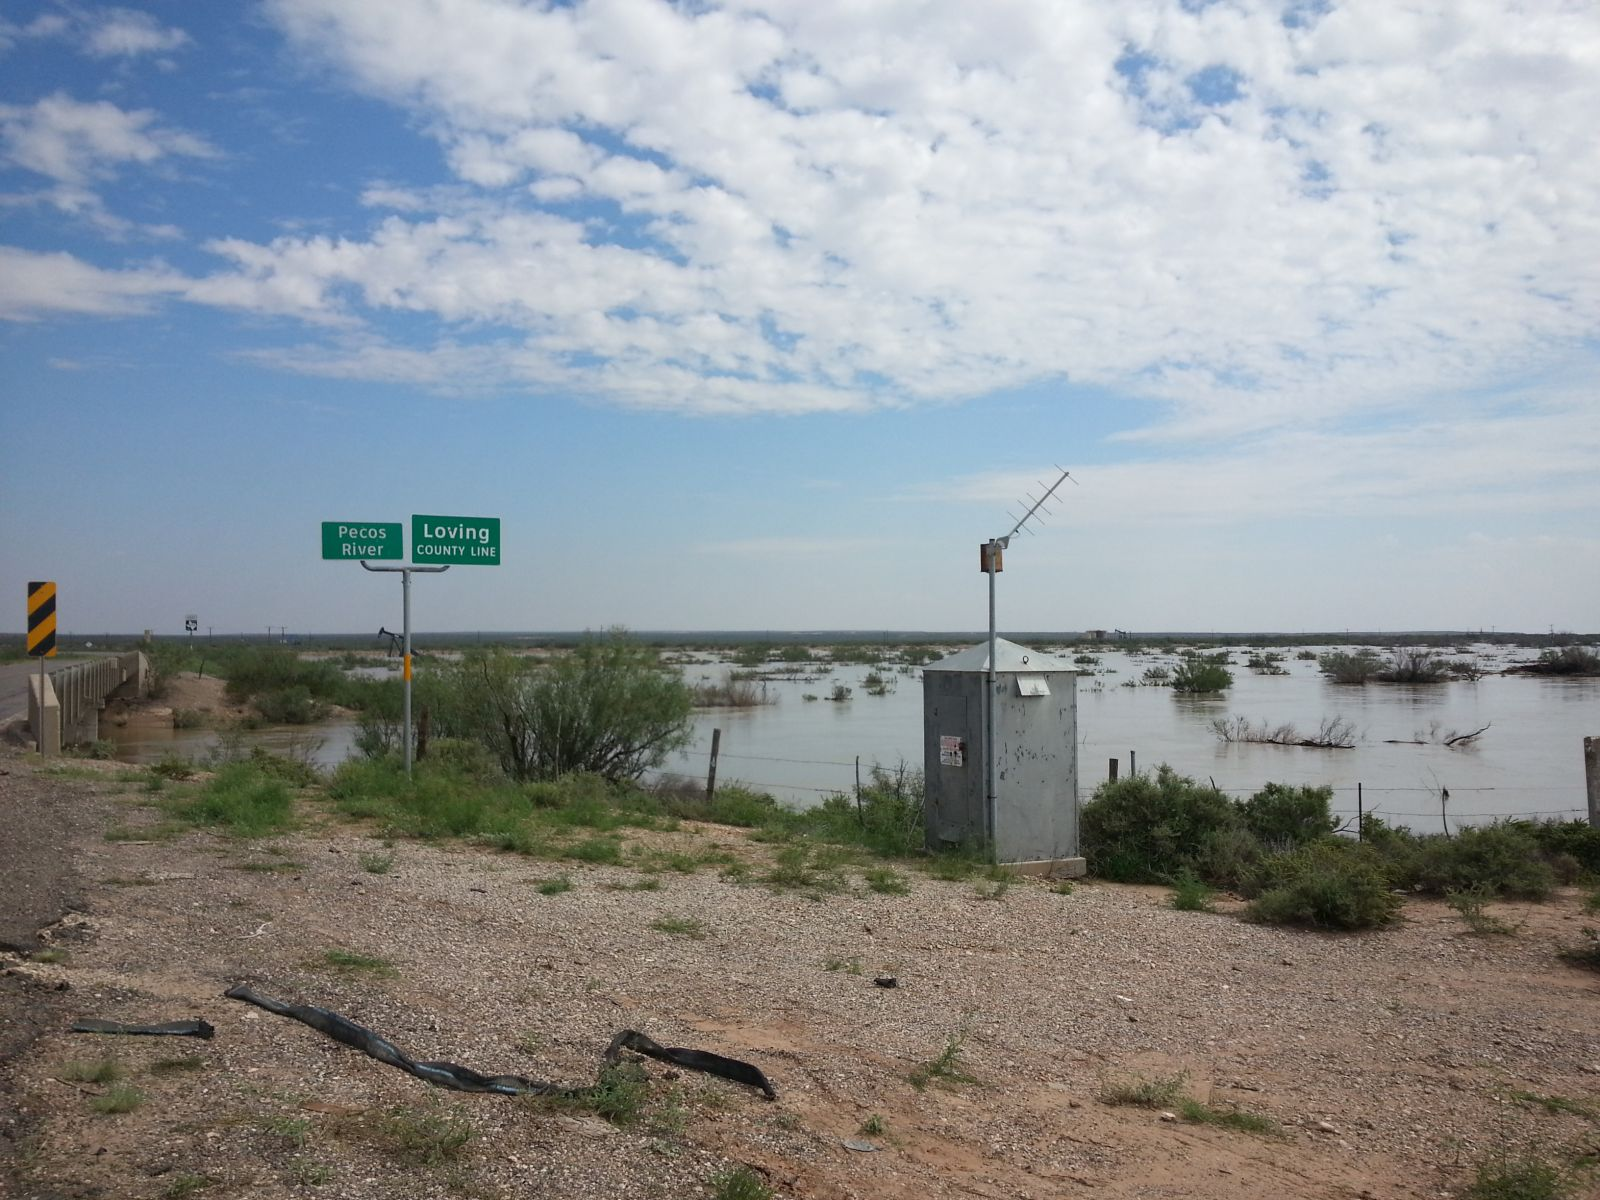 Several views of the swelling Pecos River between Red Bluff Reservoir and the town of Pecos on September 24, 2014.